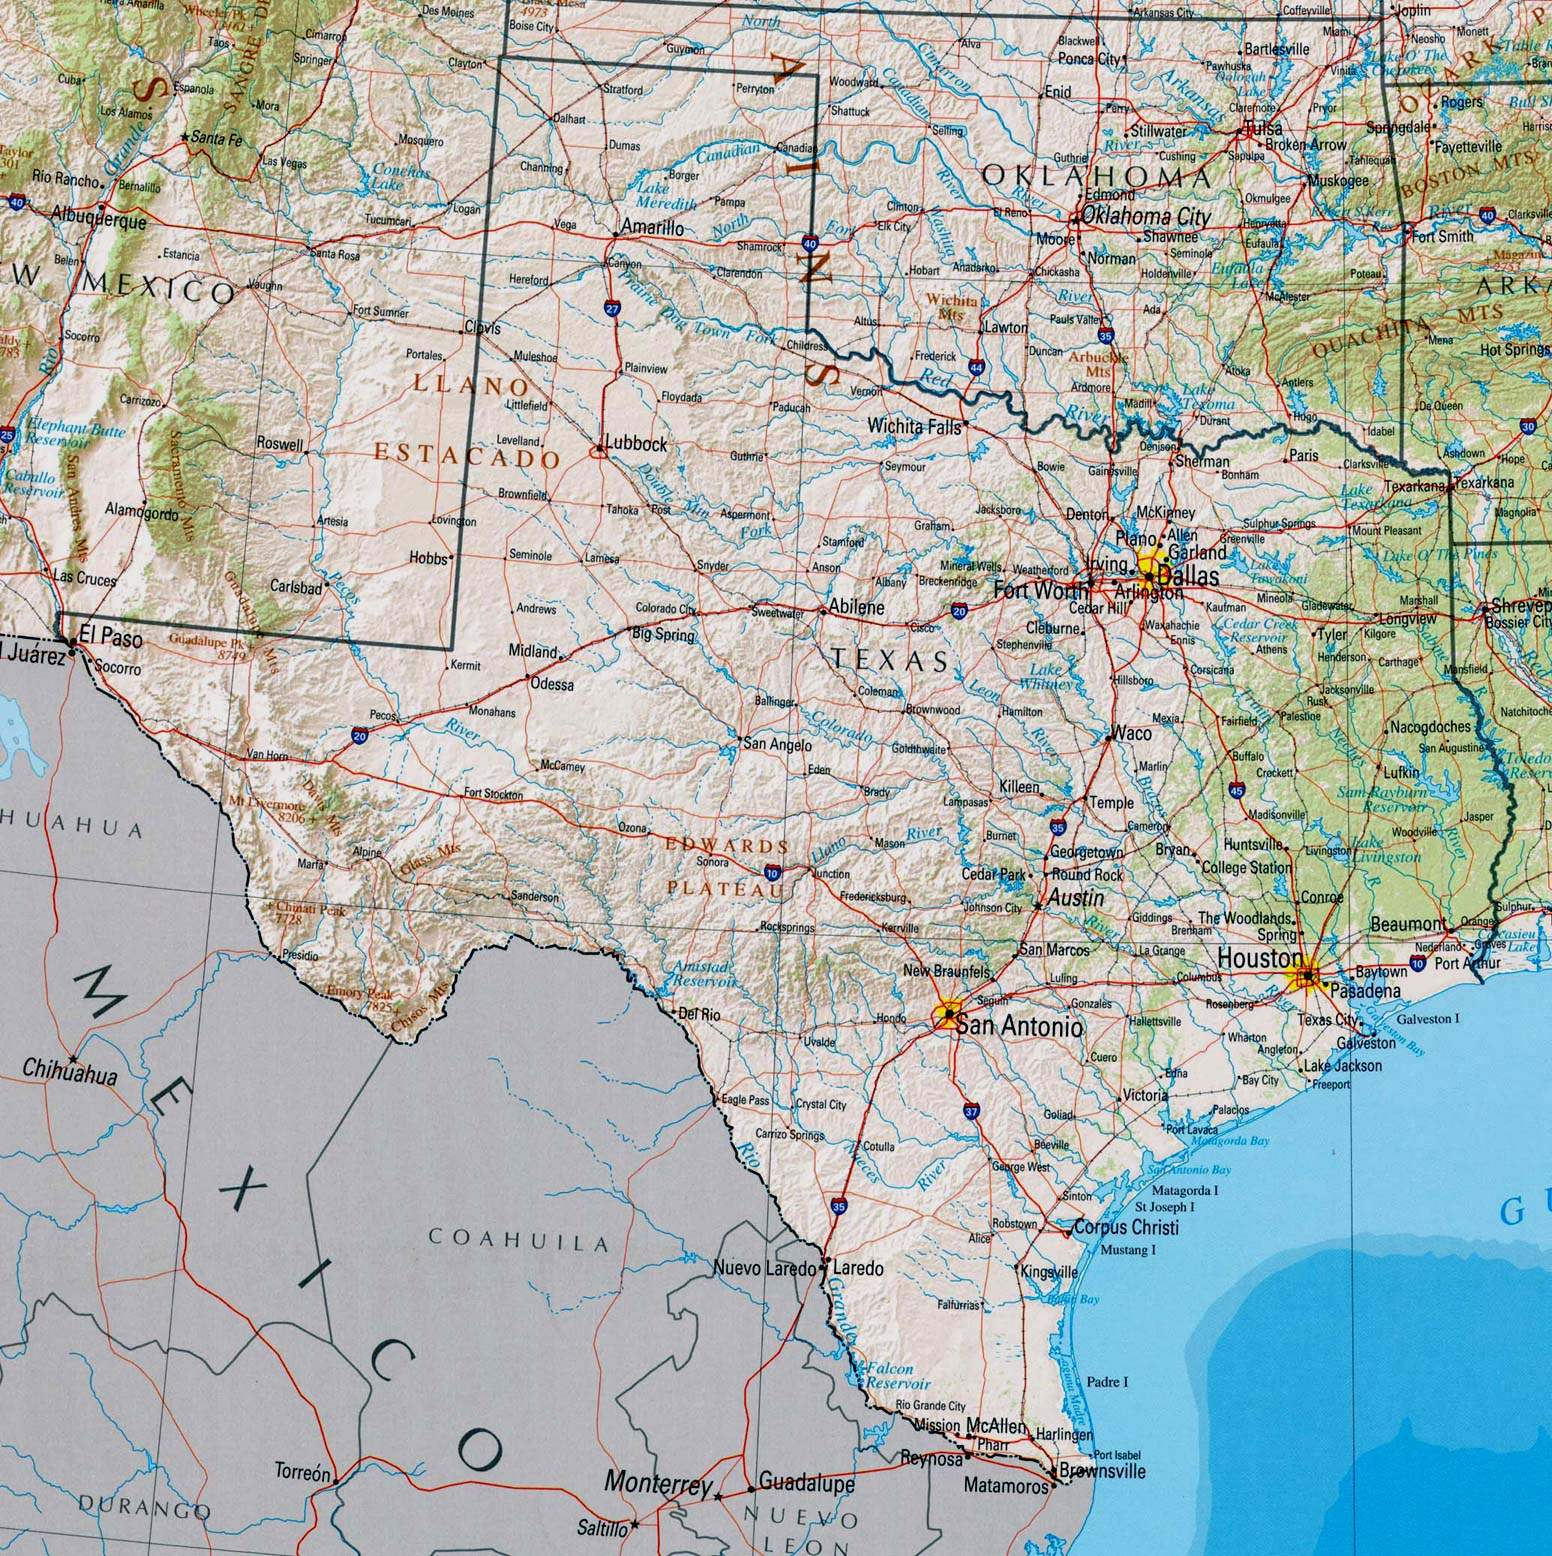 Large Texas Maps For Free Download And Print | High-Resolution And - Google Maps Dallas Texas Usa